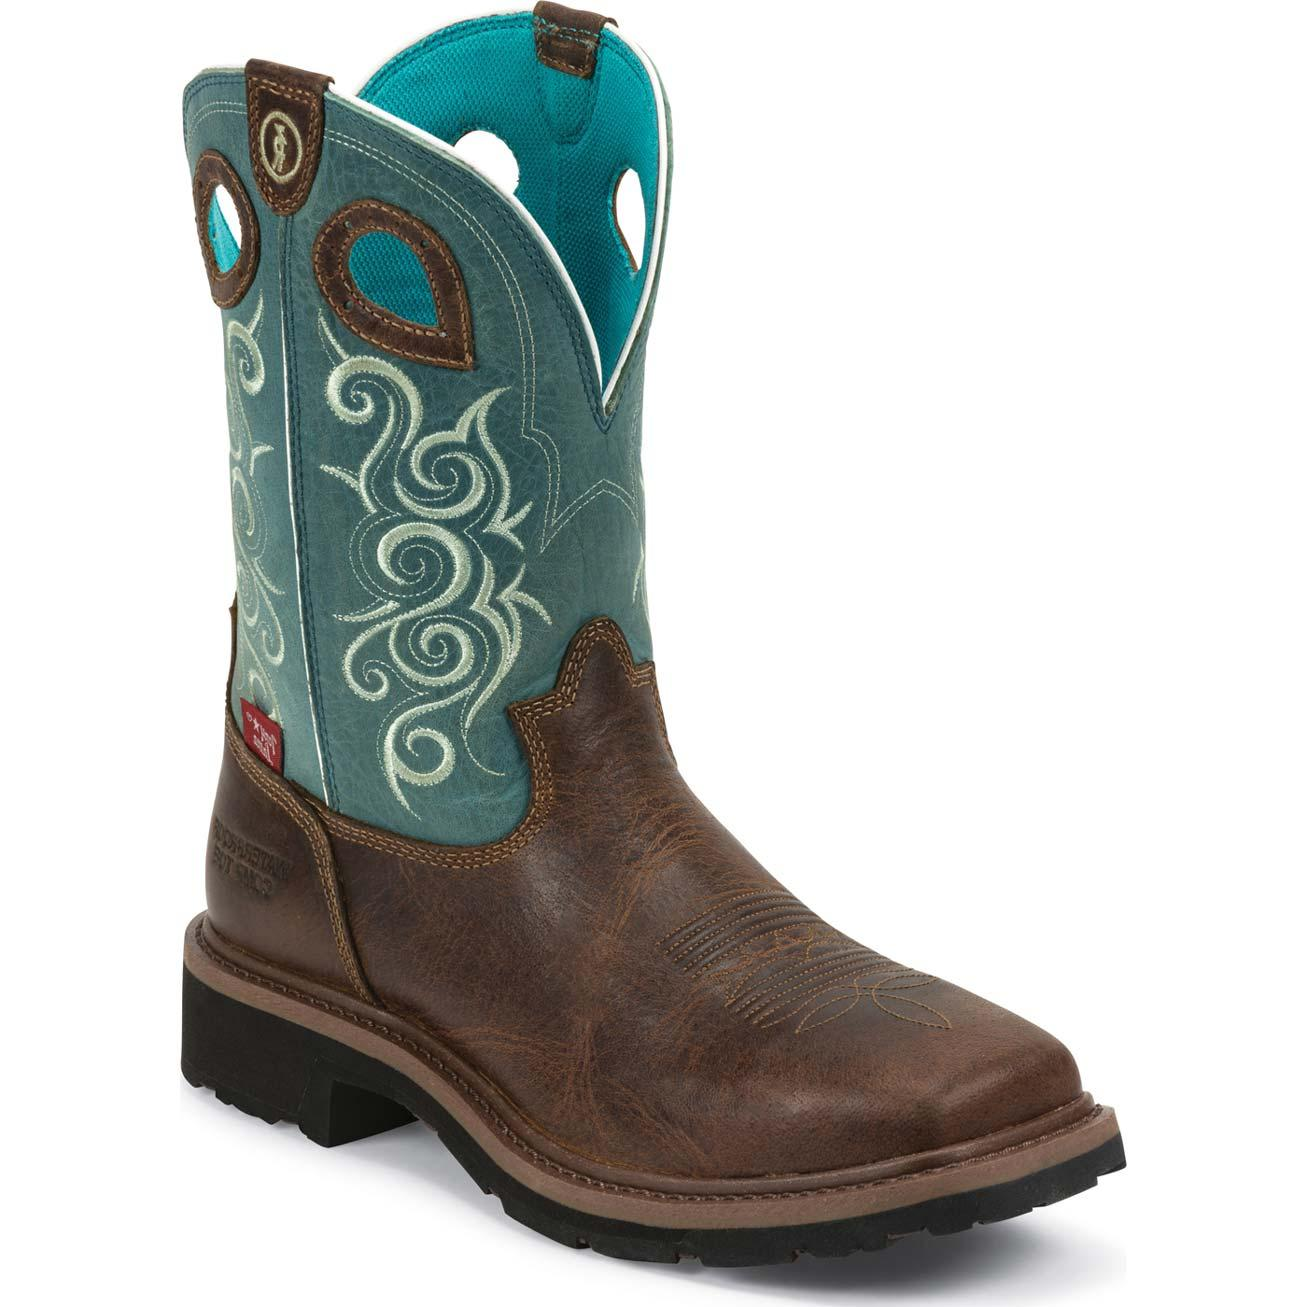 Tony Lama 3r Women S Composite Toe Waterproof Western Work